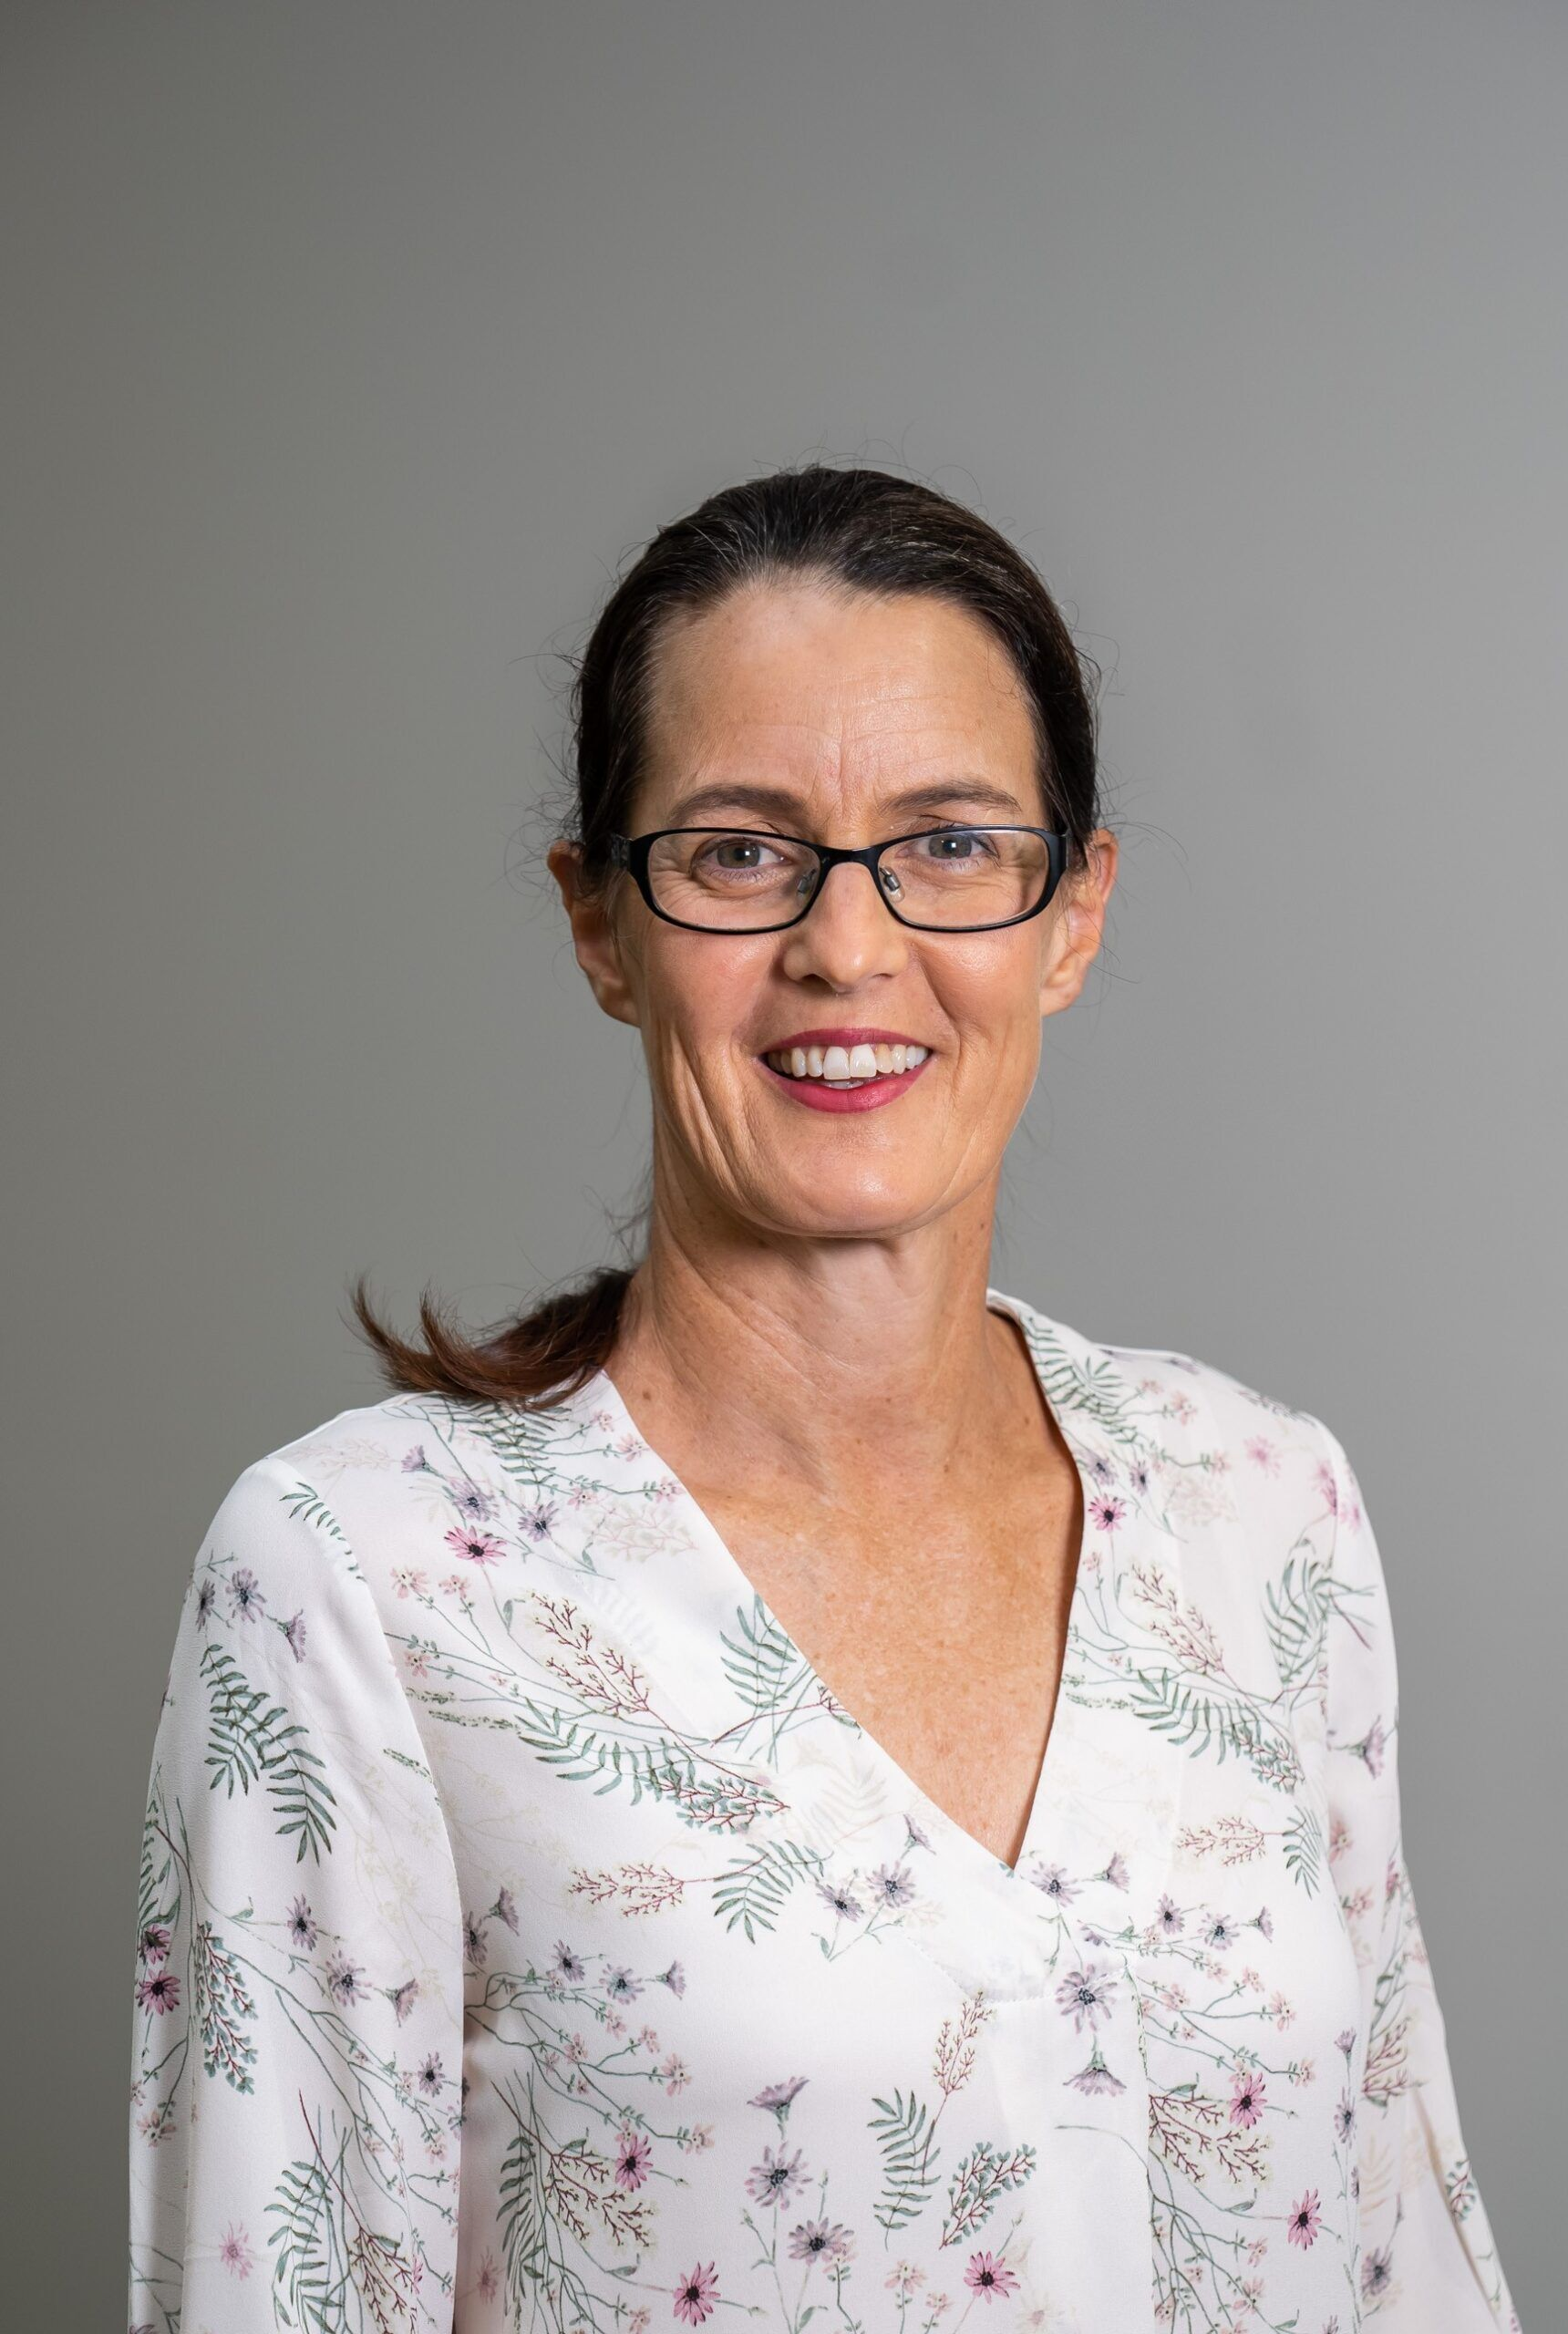 Sally Crothers - home midwife service - Toowoomba Obstetrics & Gynaecology